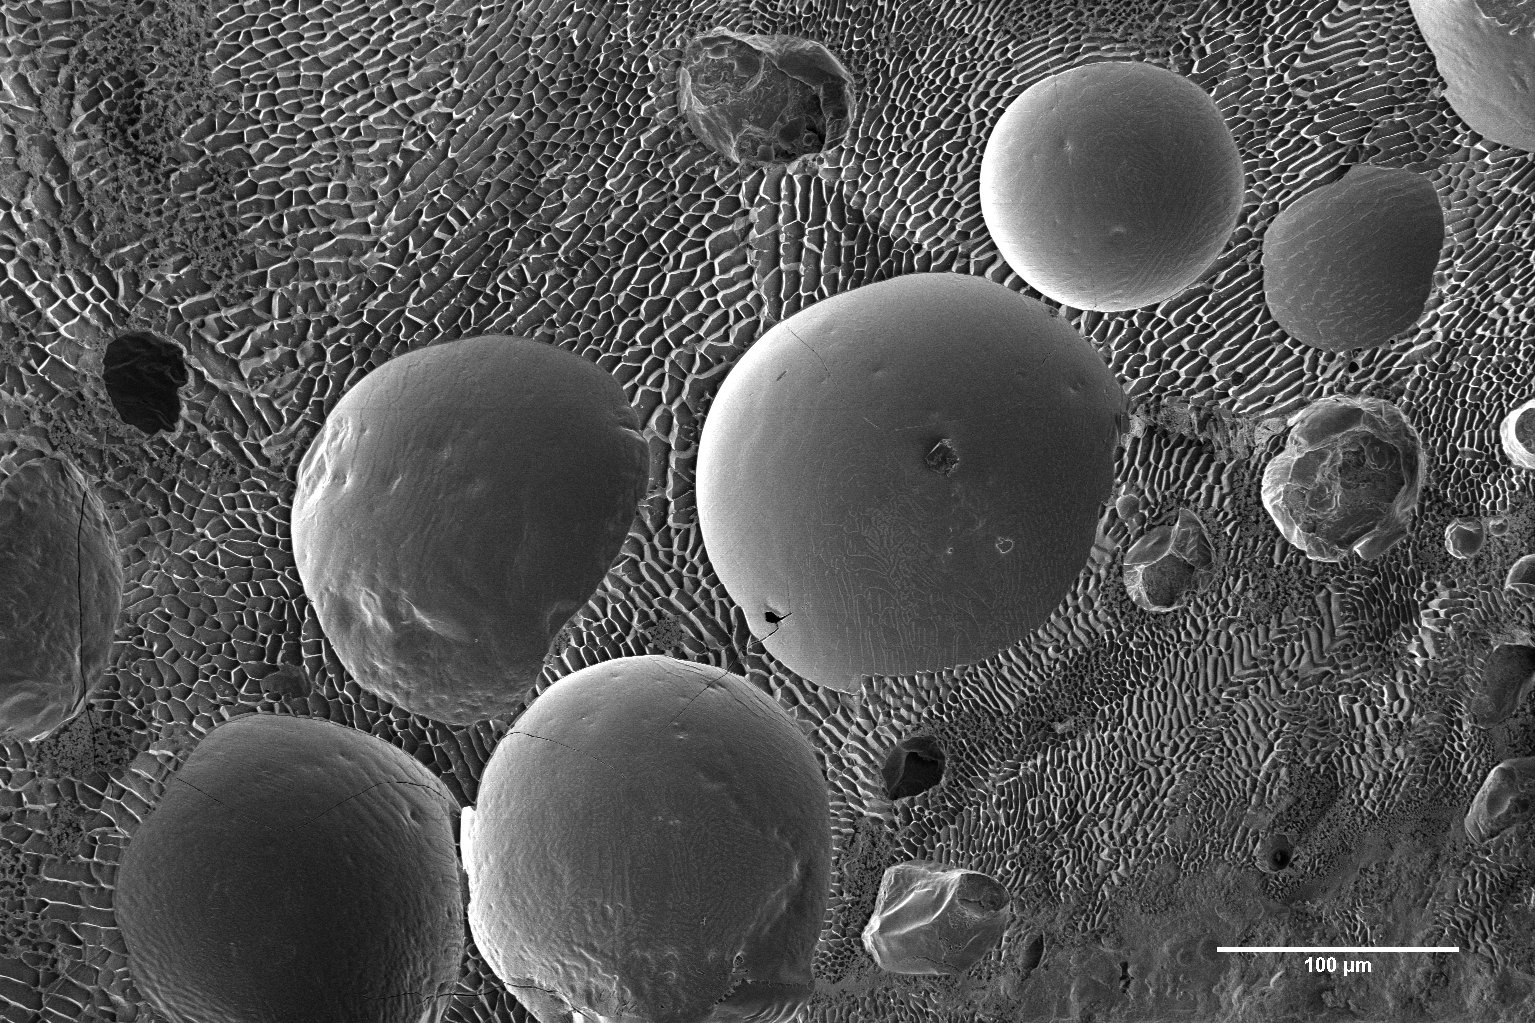 Curdled milk (fractured) showing round milk fat globules within a water/solute matrix (Karin Müller, CAIC, Cambridge)